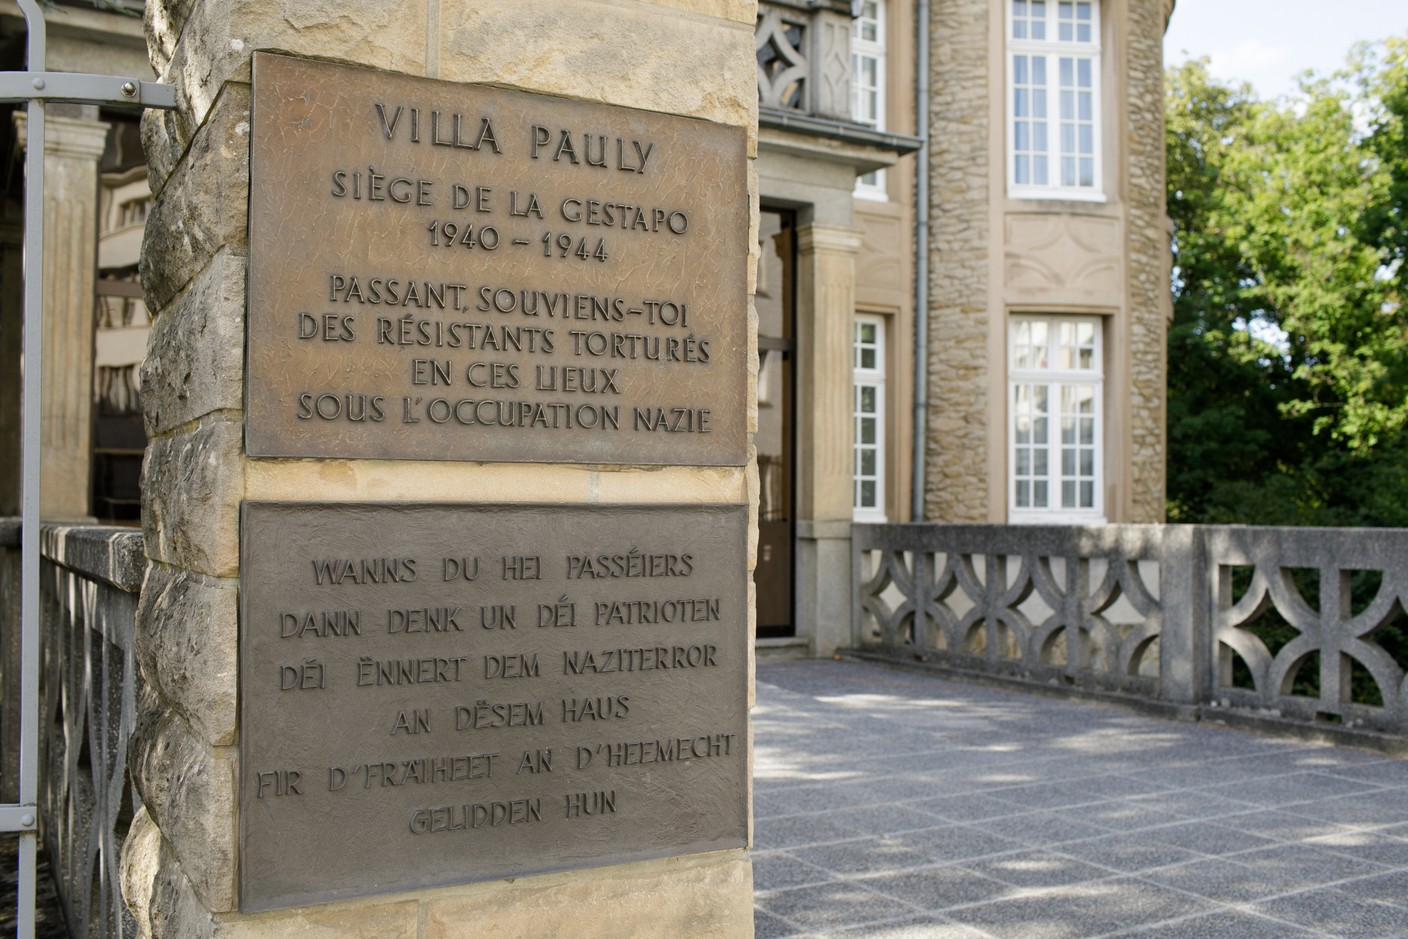 It took until 2016 for the outside of the building to acknowledge the deportation of Jews from Luxembourg organised from Villa Pauly Matic Zorman / Maison Moderne